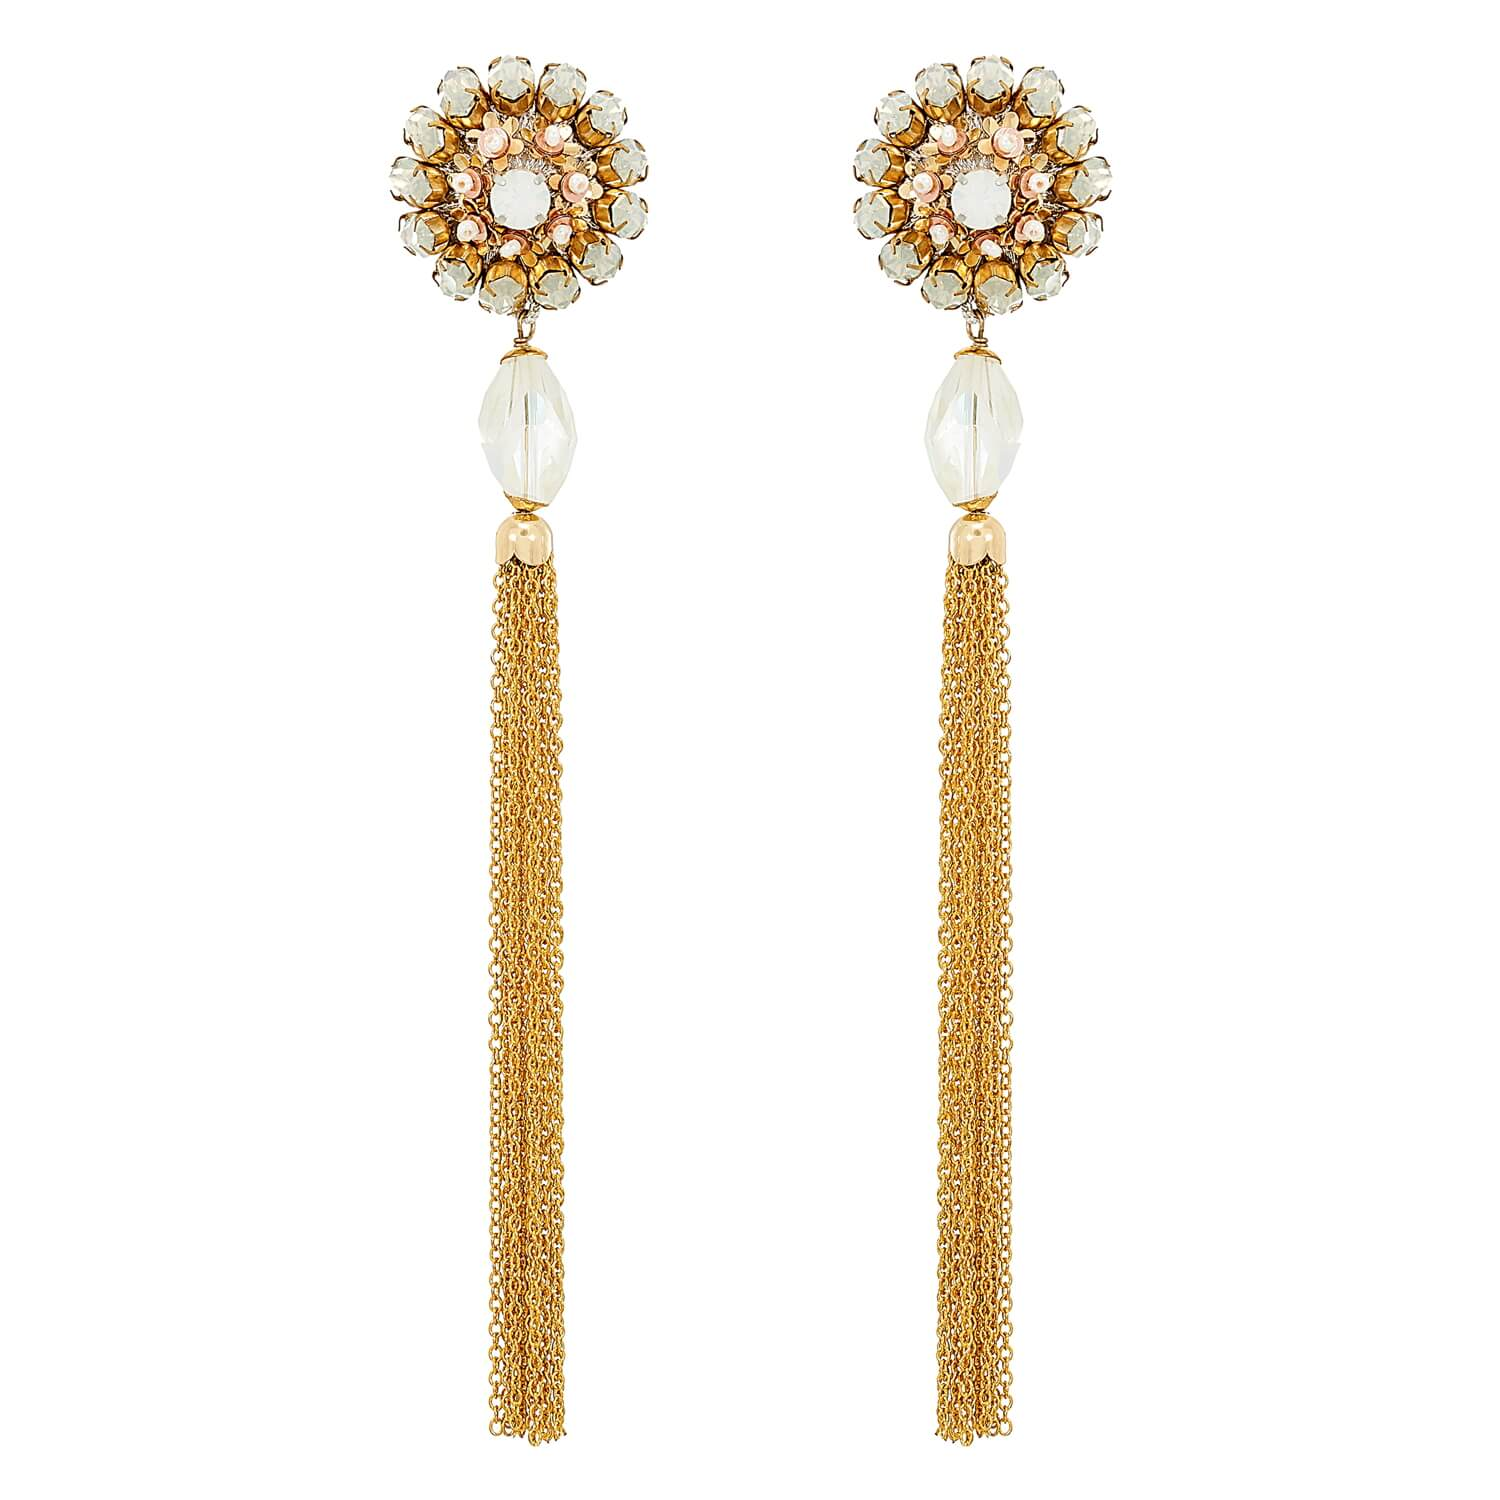 Floral Button Earring with Chain Tassle- Opal Gold Pink